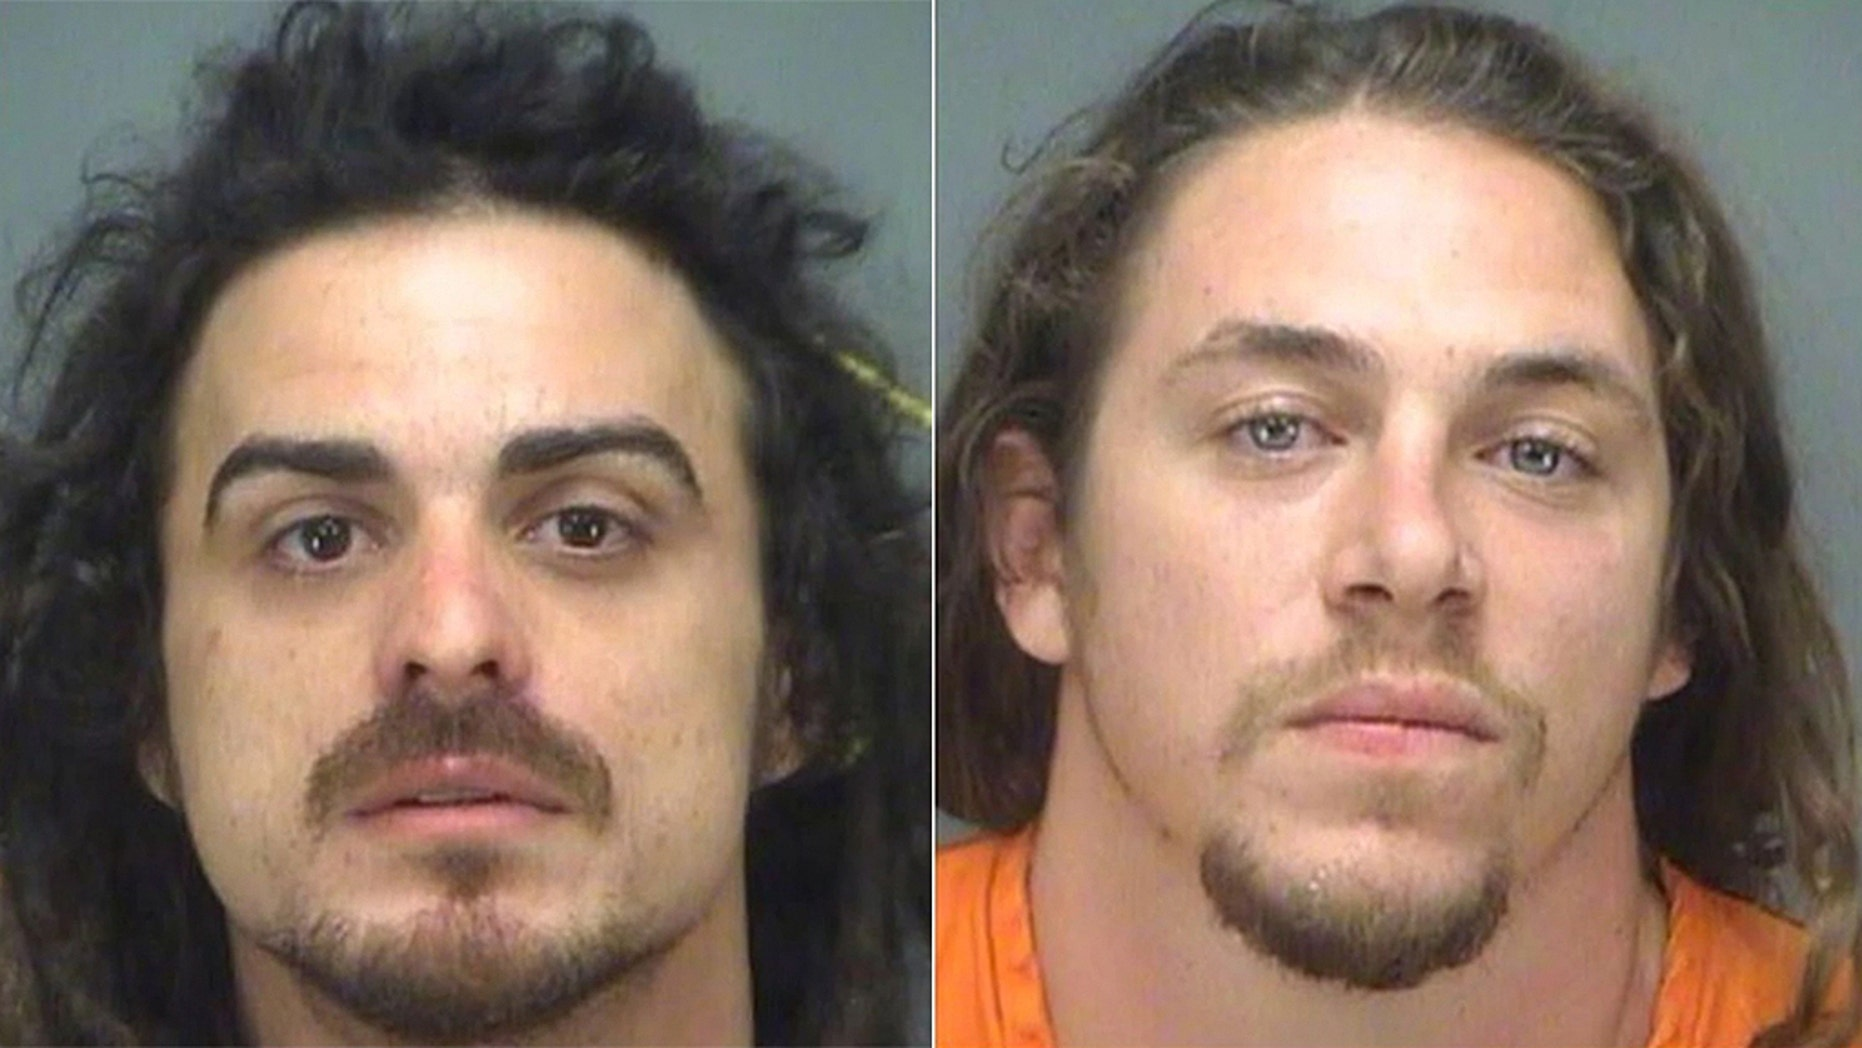 Shay Morgan Tracy, 28, of St. Petersburg and Alex Anthony Laky, 27, of Hudson, were arrested on criminal mischief charges after being accused of climbing the city of Largo's 35-foot Christmas tree in Florida.